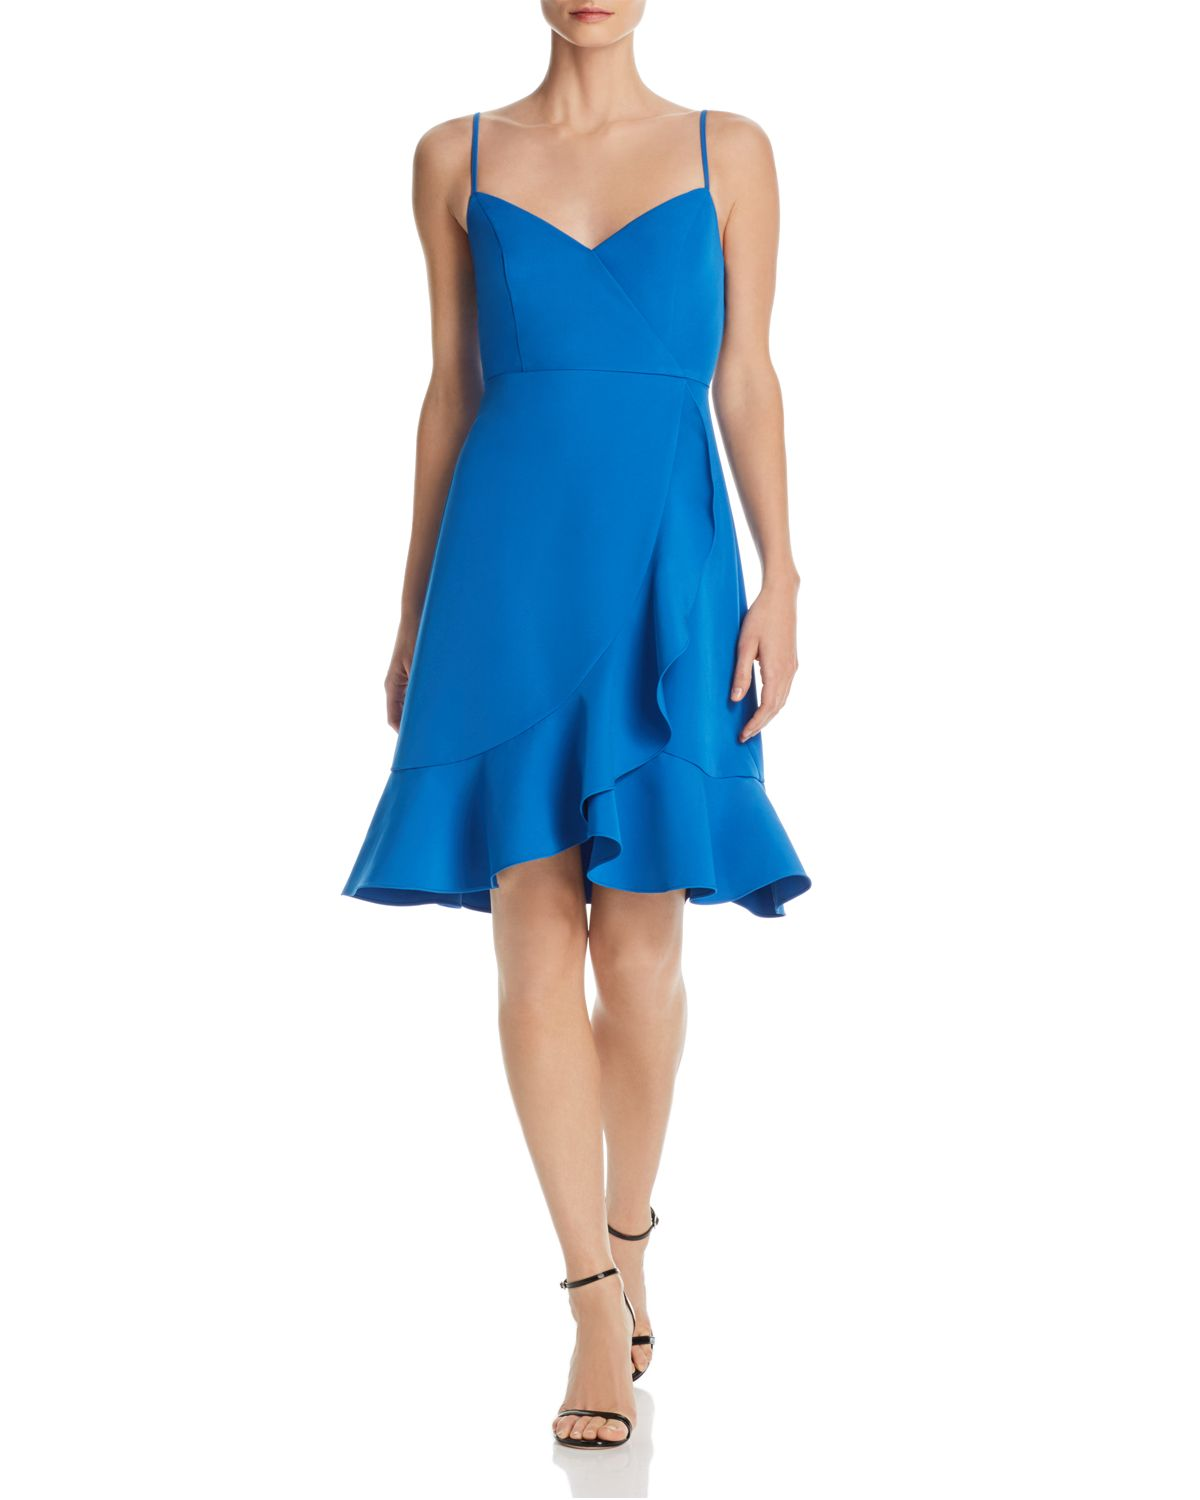 Sale alerts for  Flounced Crossover Dress - 100% Exclusive - Covvet